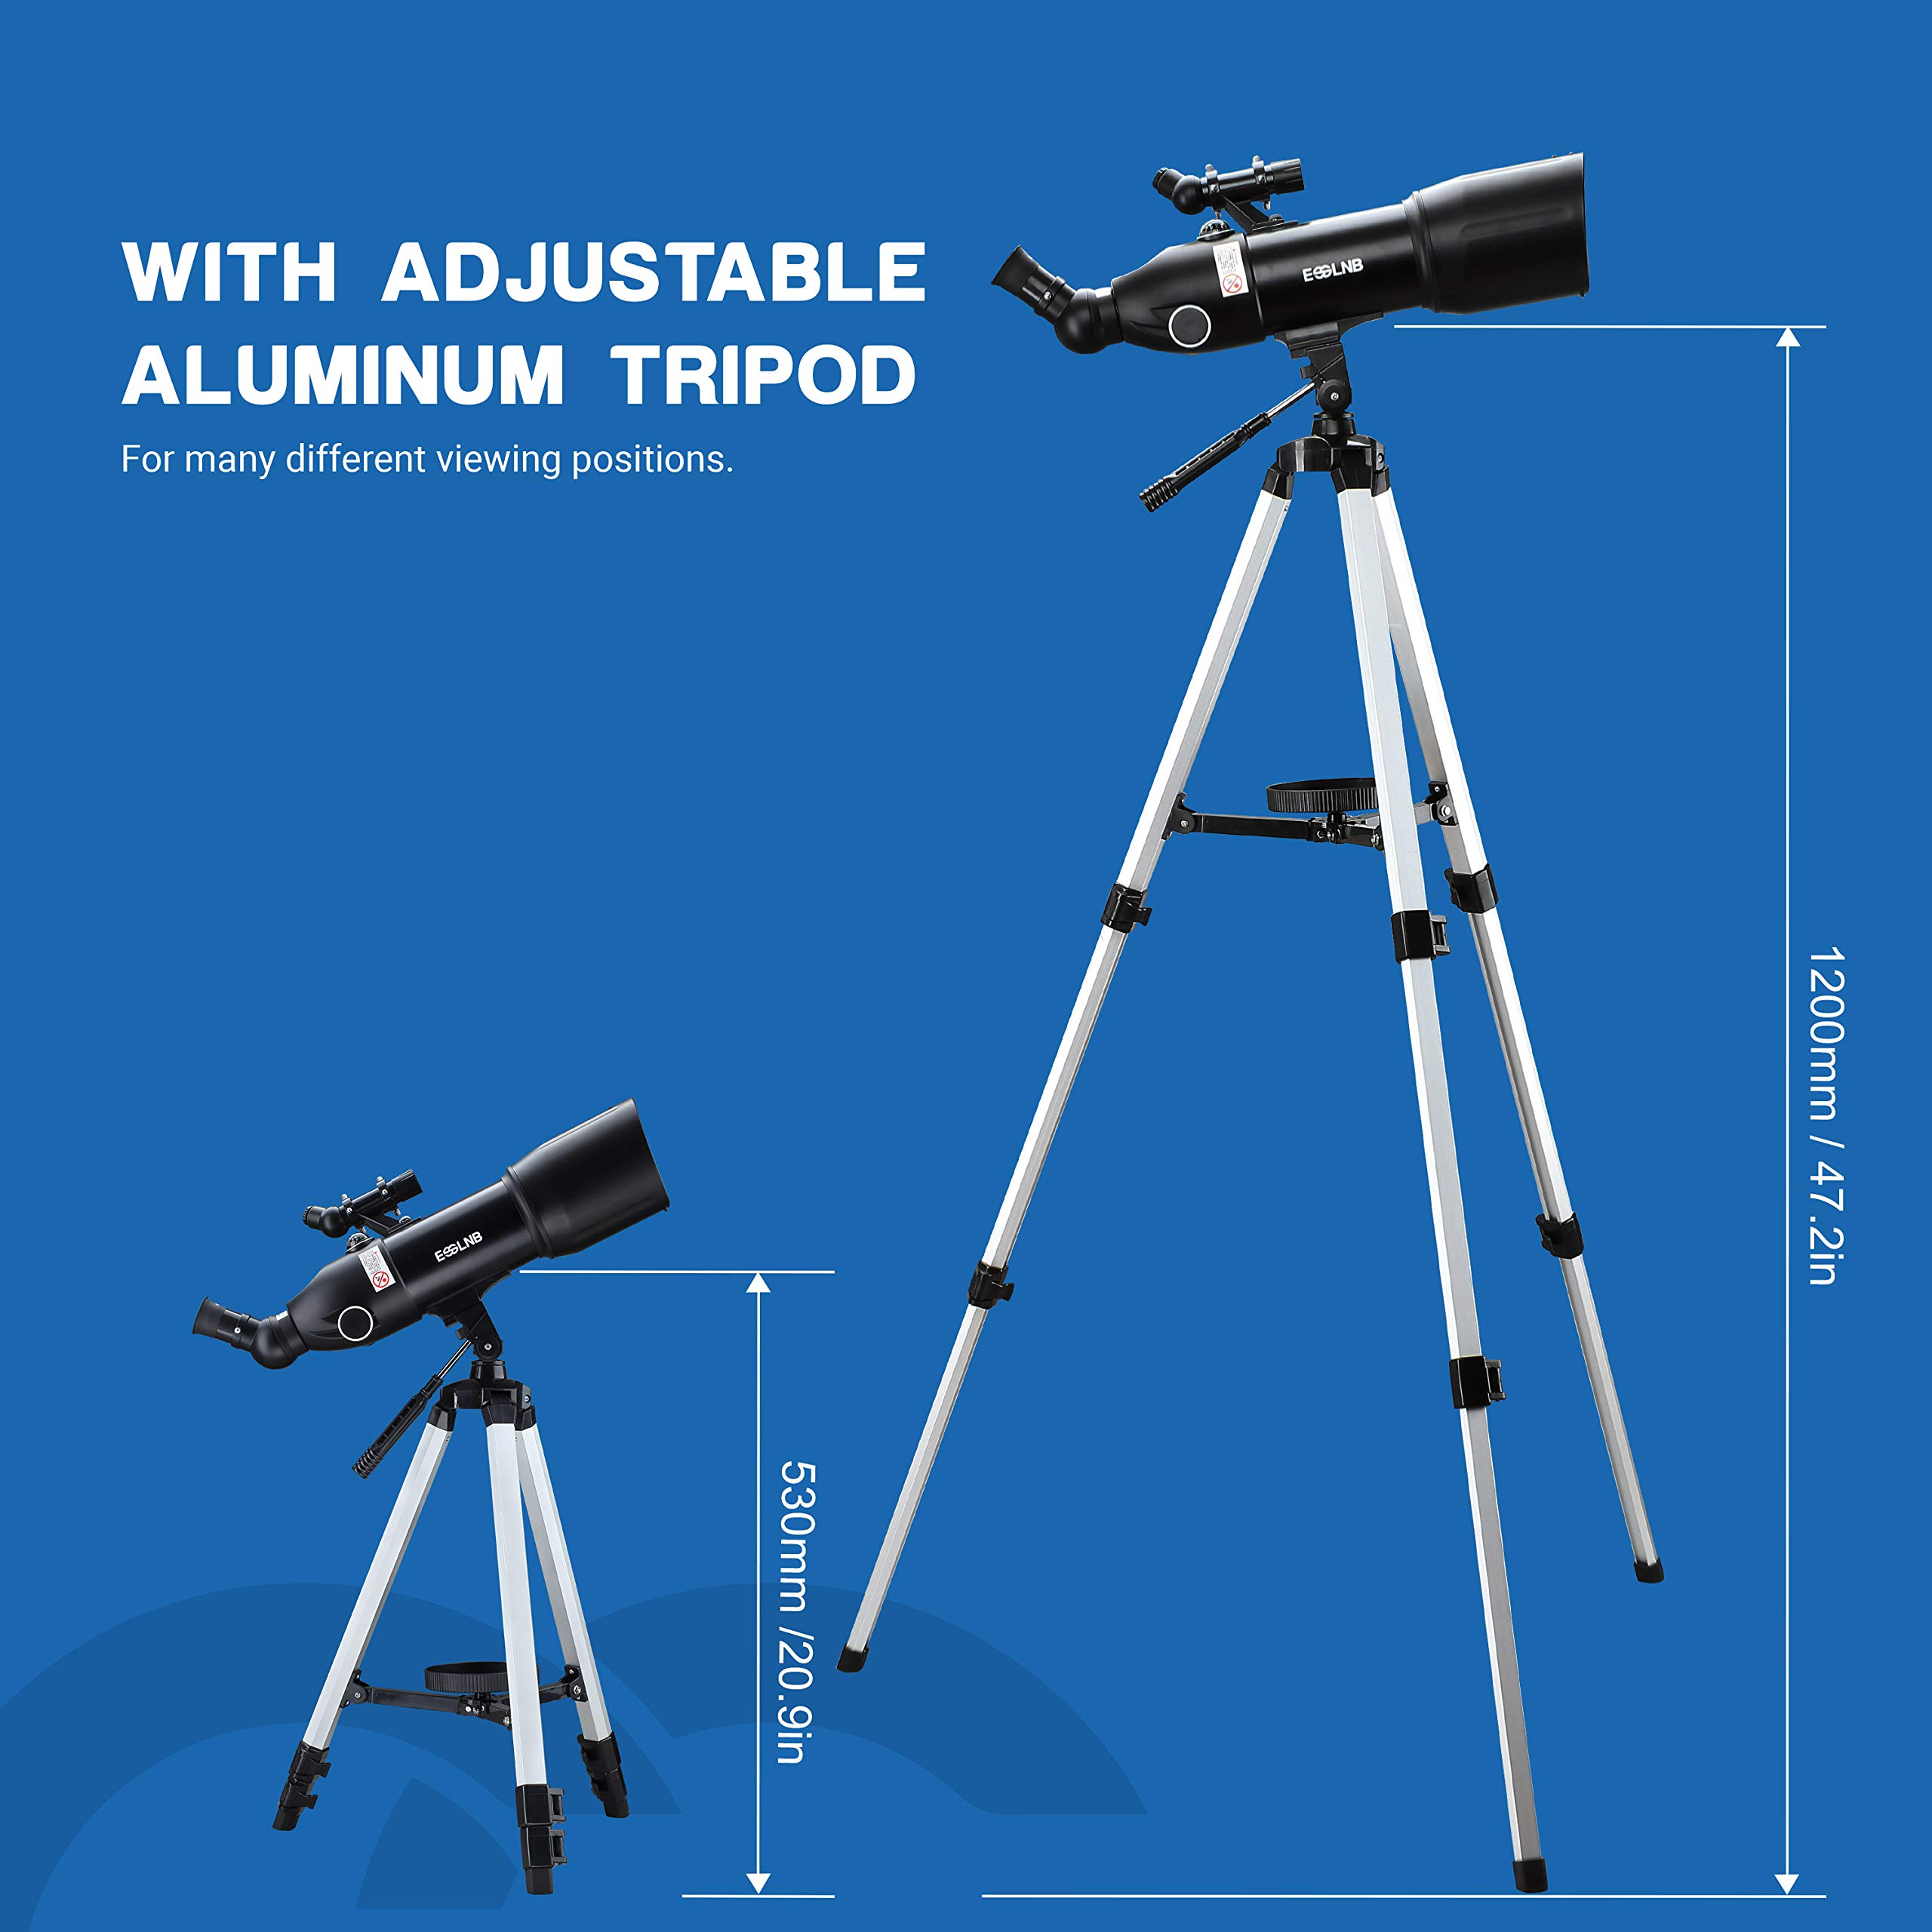 ESSLNB Telescopes for Adults Astronomy Beginners Kids 400X80mm with 10X Smartphone Adapter Adjustable Tripod Case and Moon Filter Erect-Image Diagonal Prism by ESSLNB (Image #5)